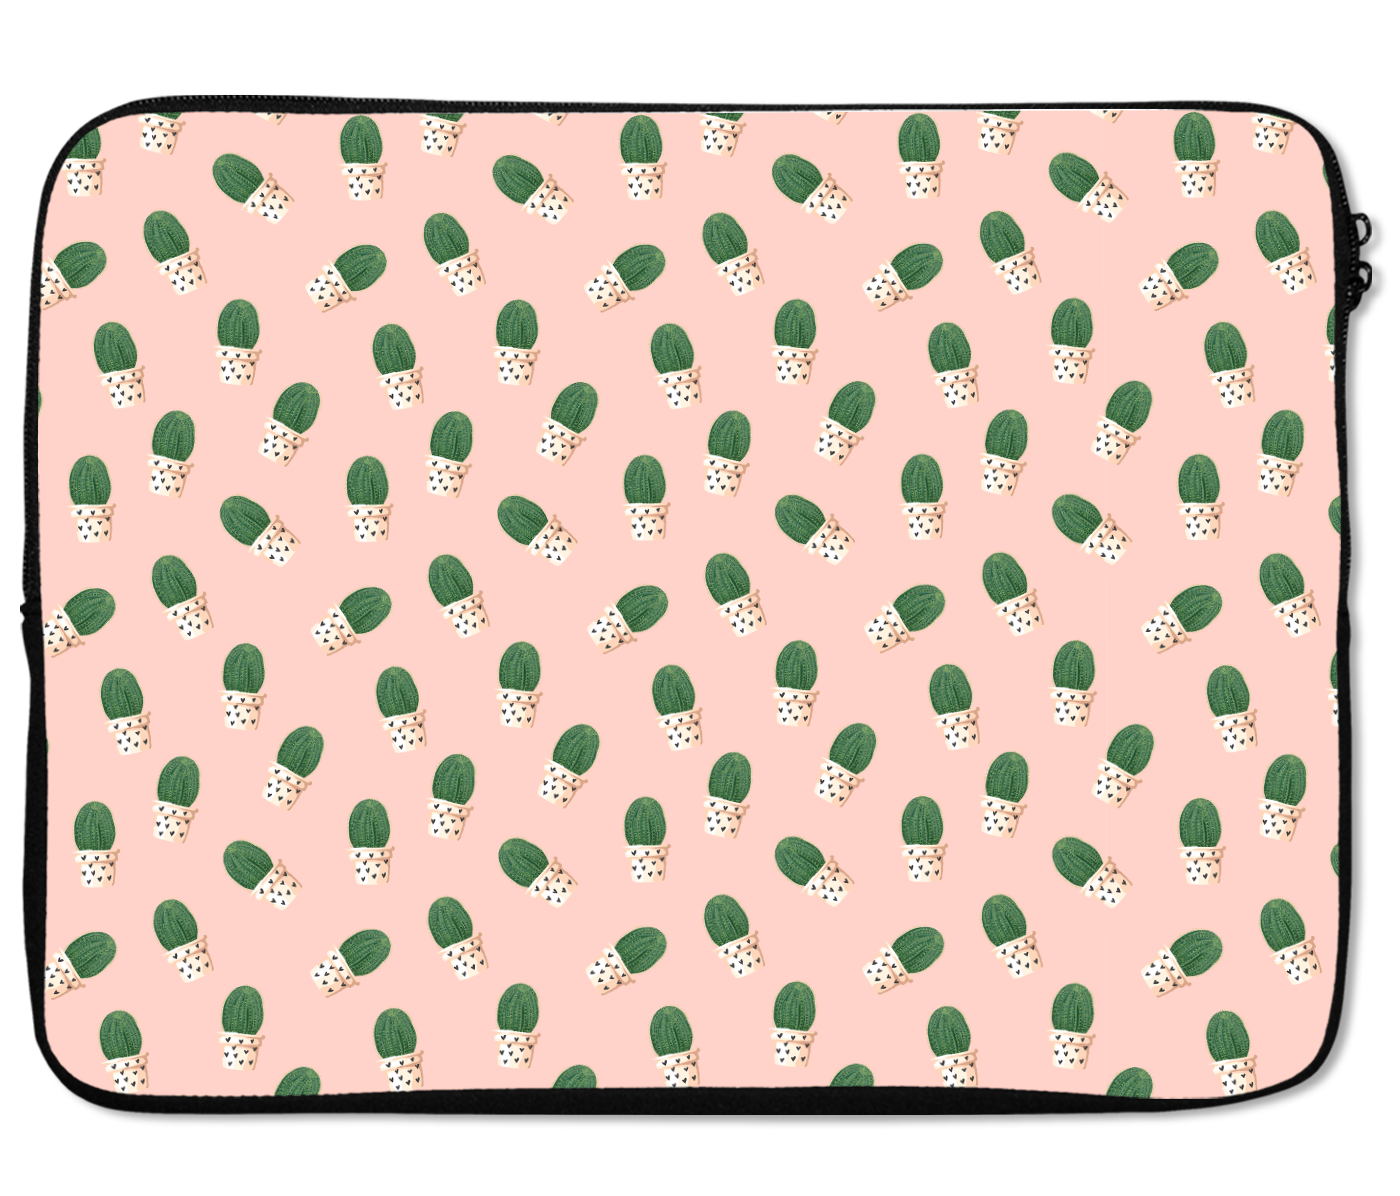 Laptops Tablet Sleeves Cactus Pattern Pink Premium Quality Neoprene Laptop Protection